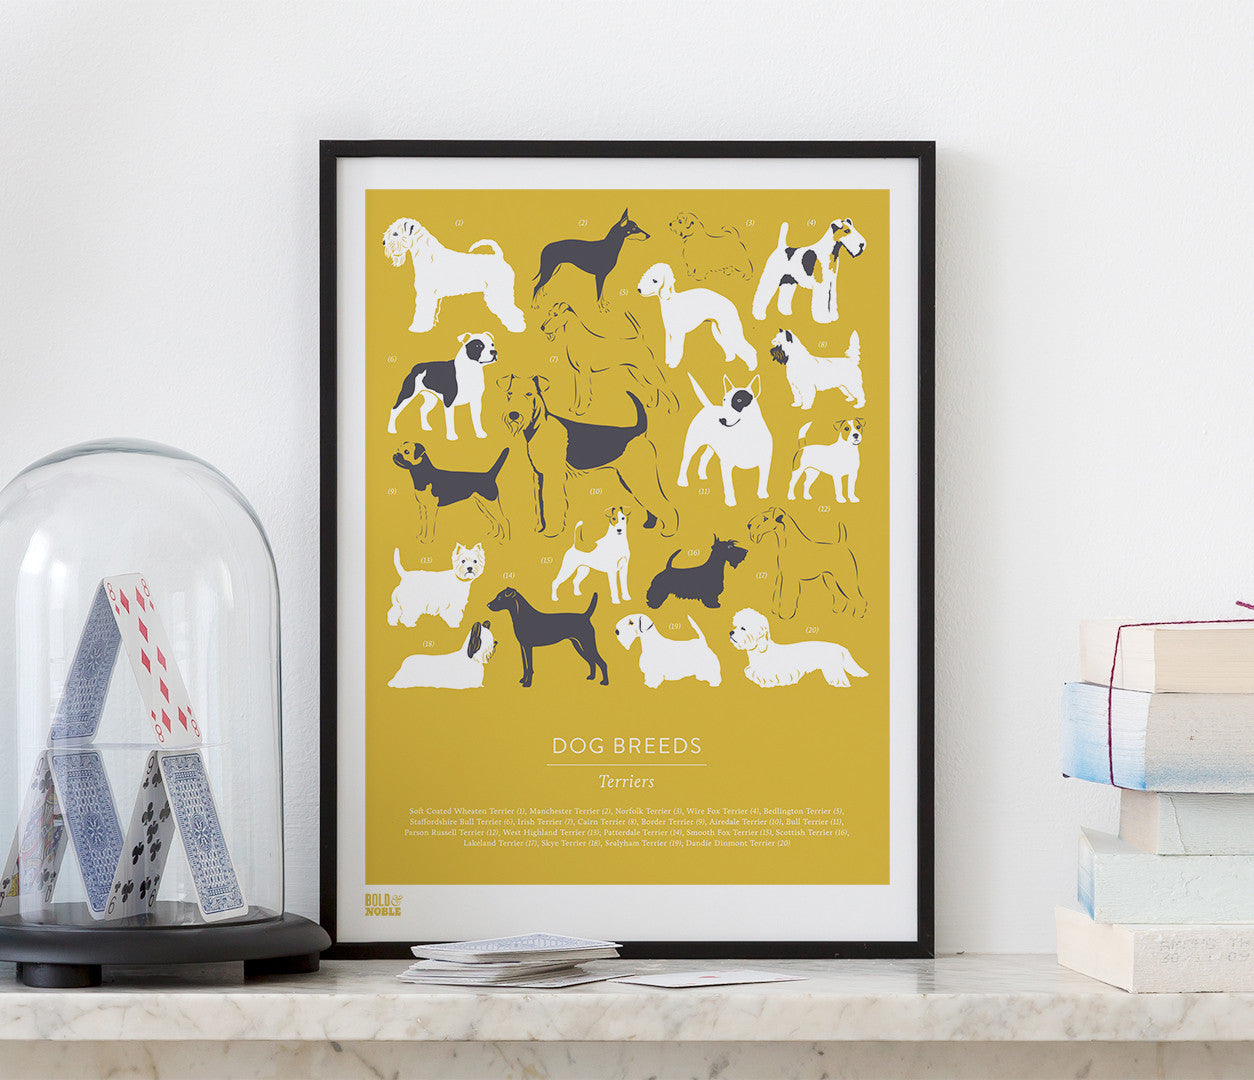 Wall Art ideas: Economical Screen Prints, Dog Breeds, Terriers in Gold Hay